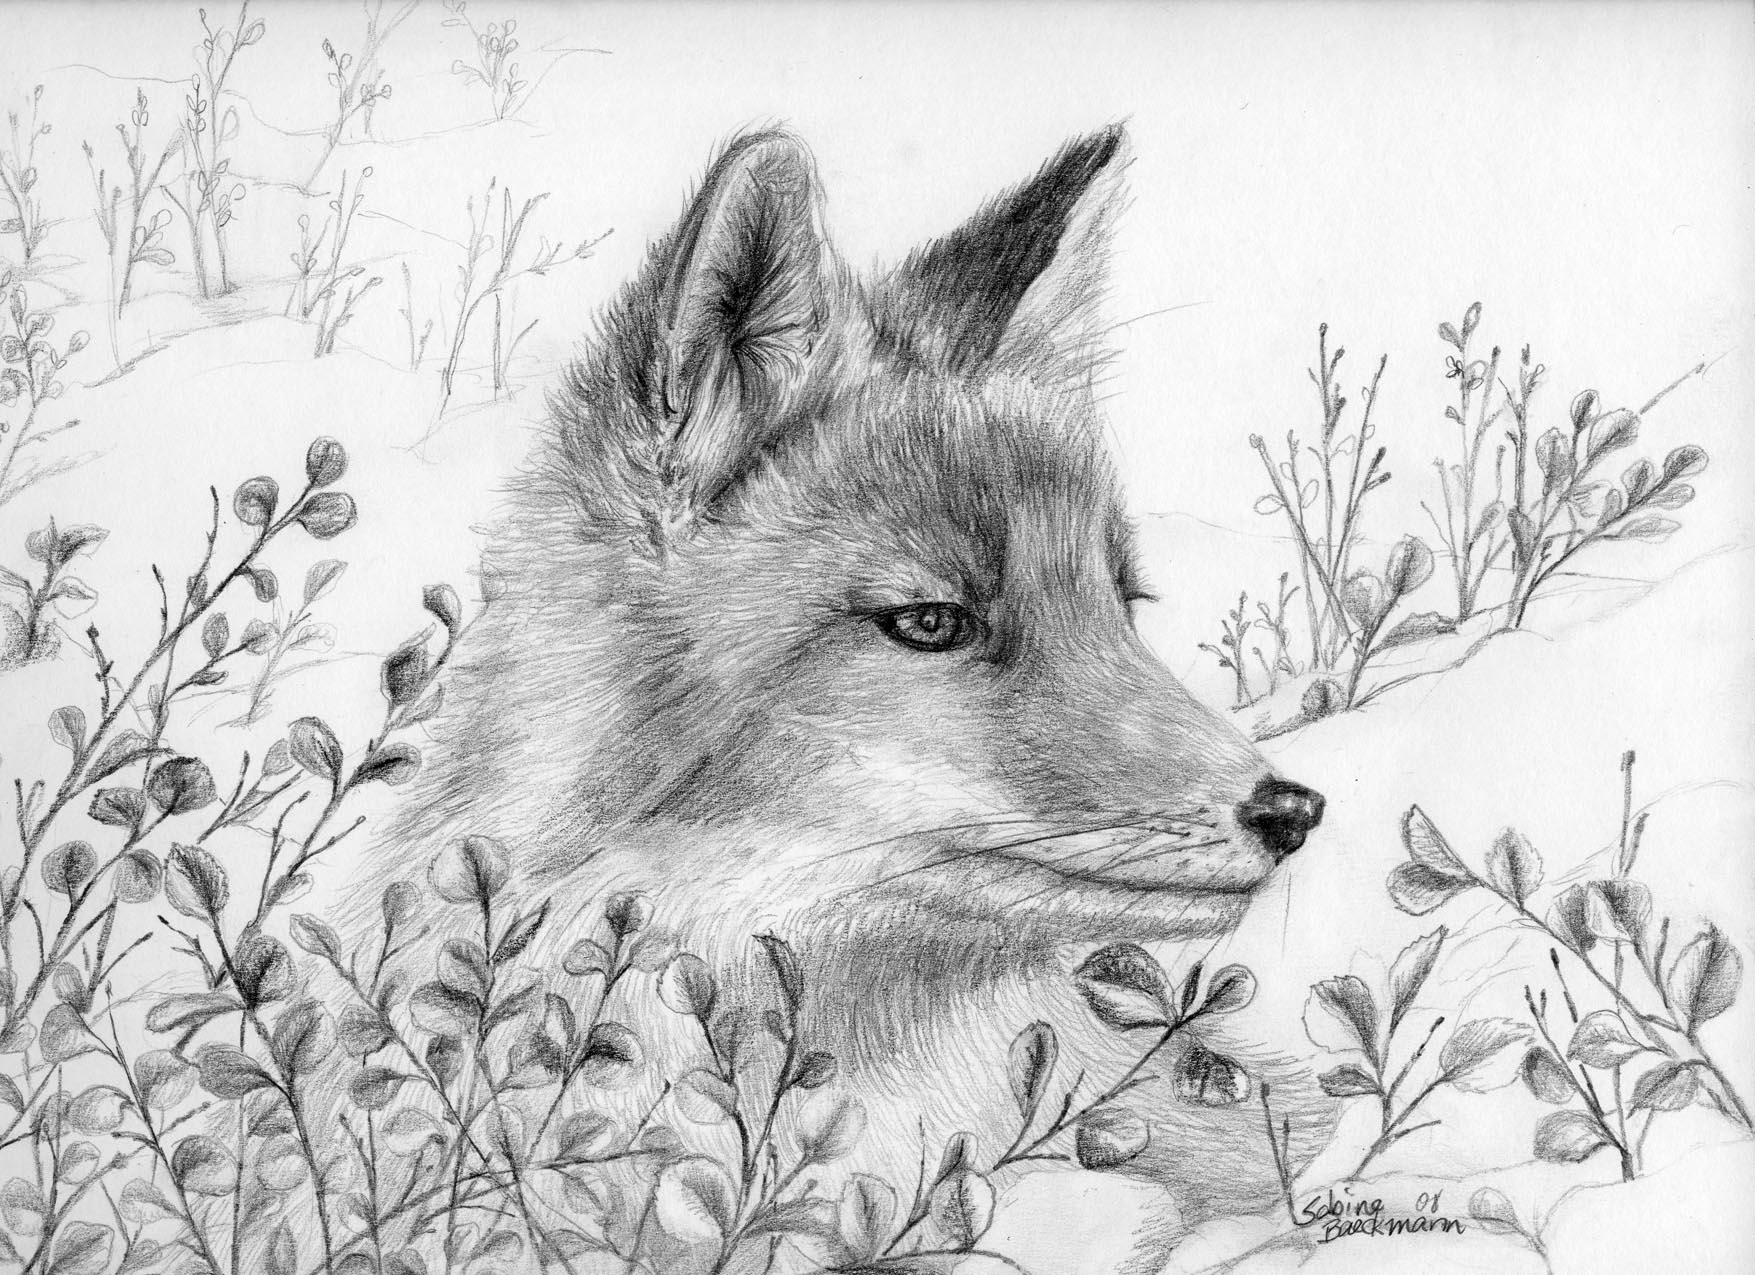 Winter Fox, original pencil